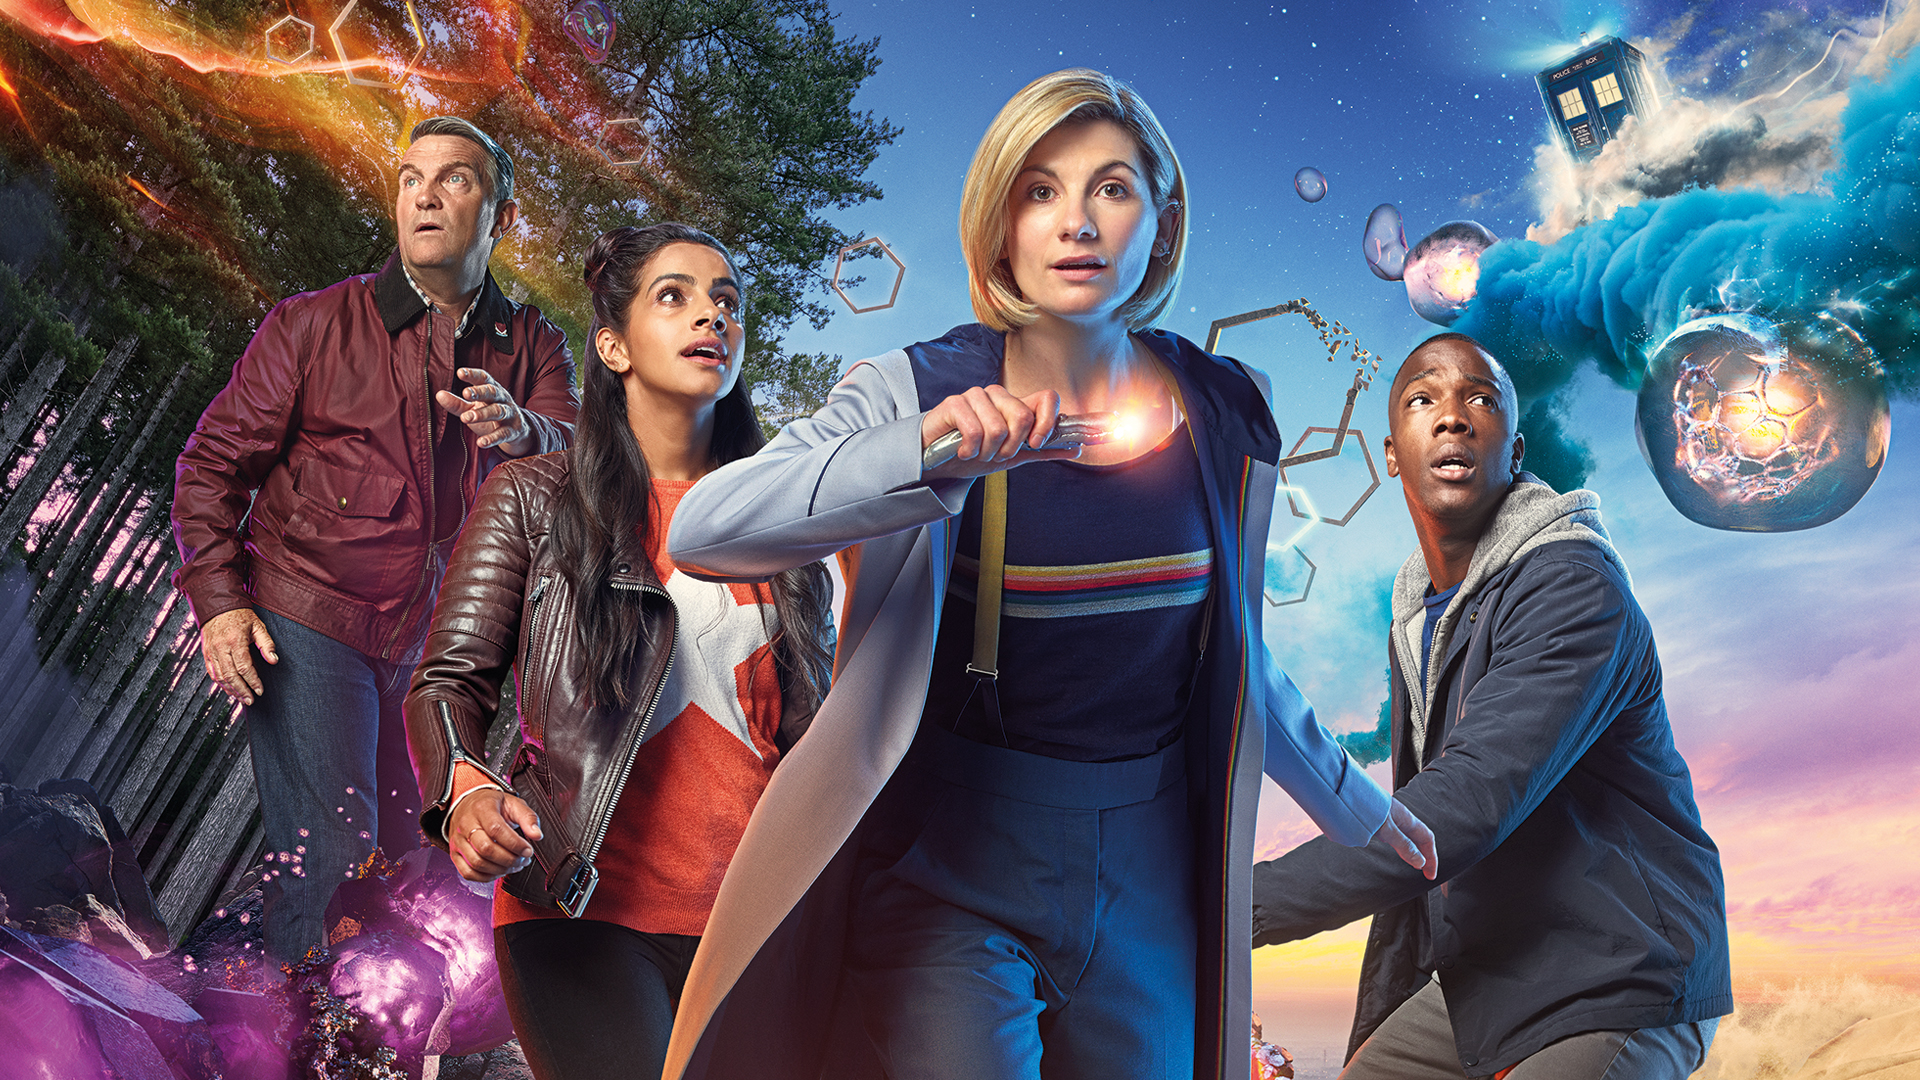 Doctor Who The Edge Of Time An Adventure Game In Vr With The